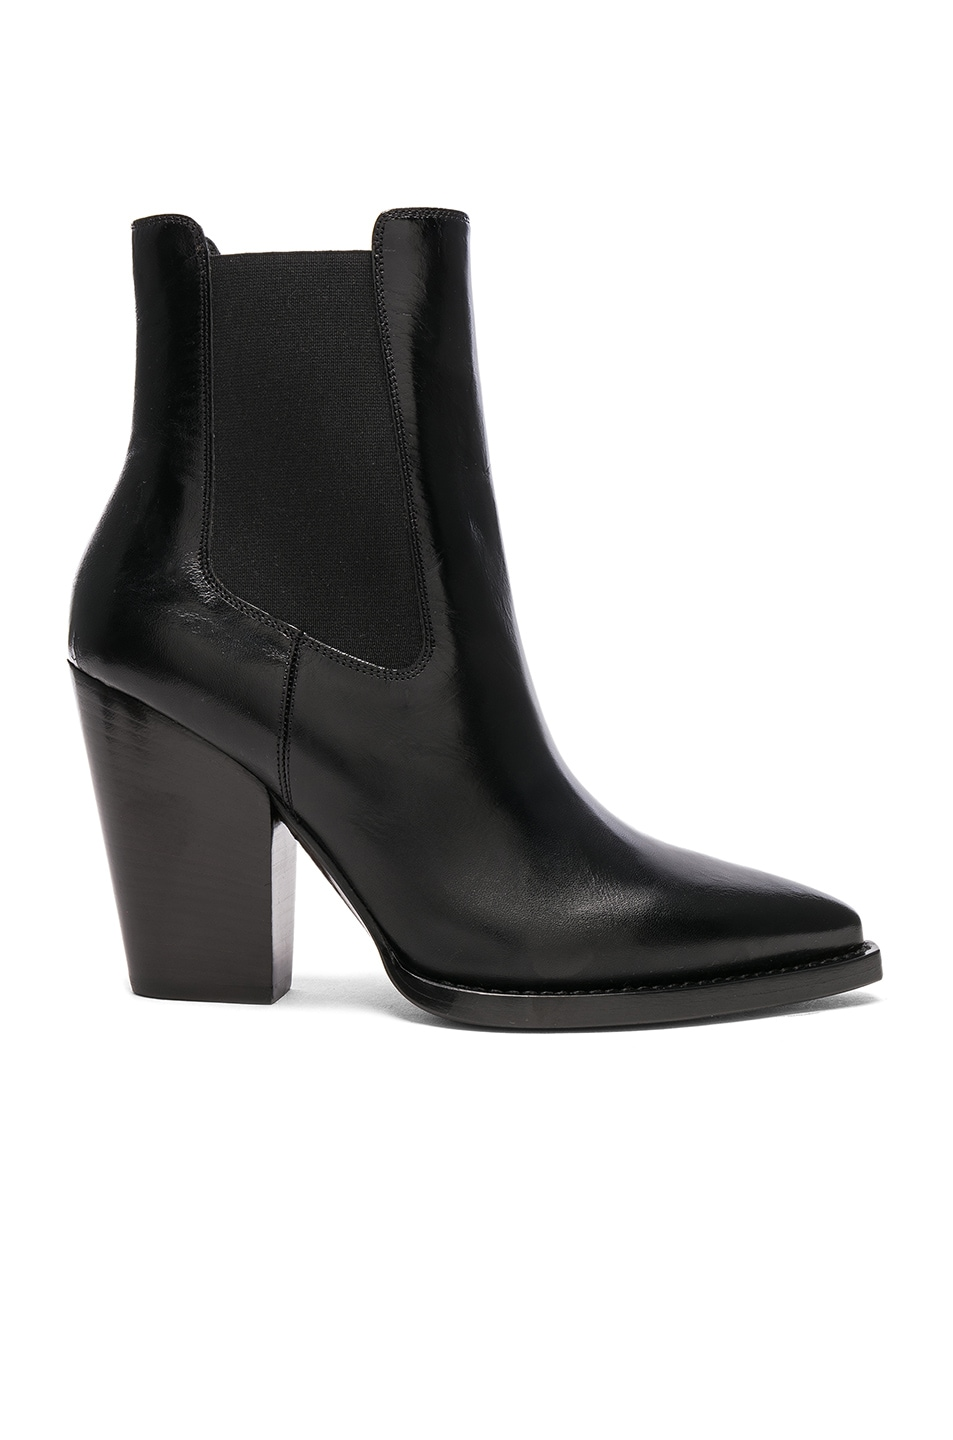 Image 1 of Saint Laurent Leather Theo Heeled Chelsea Boots in Black